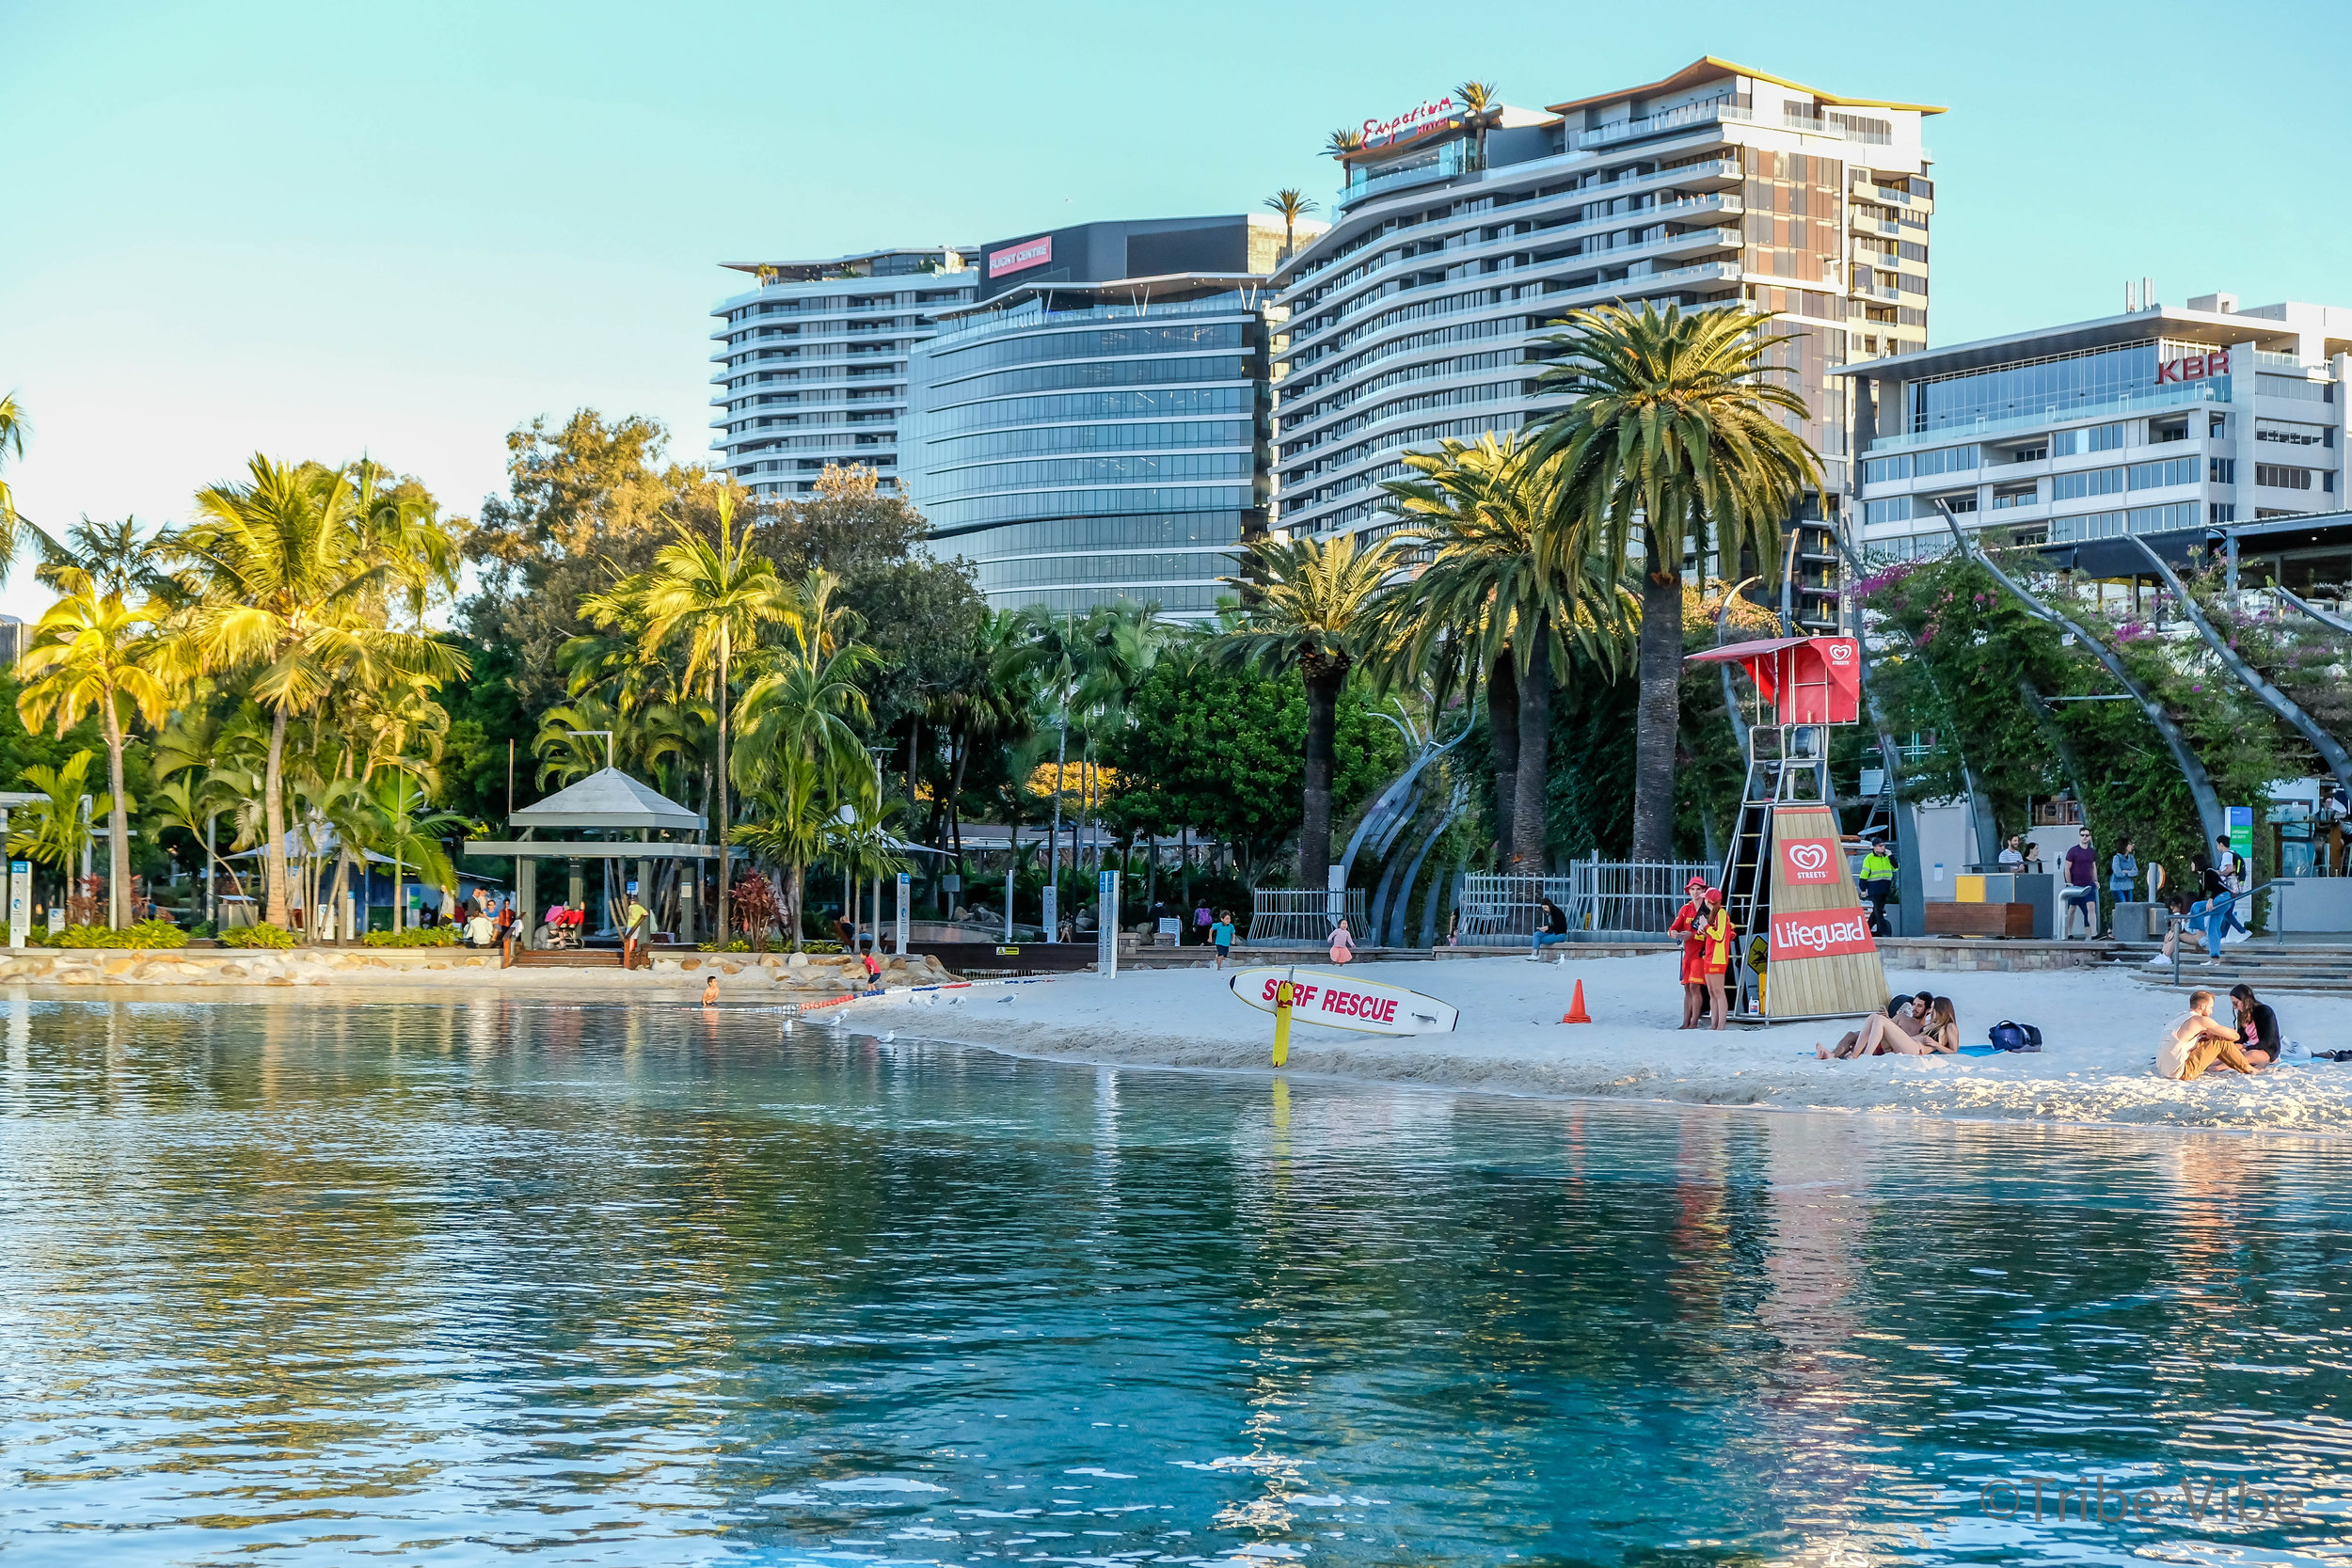 Outdoor beach area at South Bank in Brisbane, Australia.